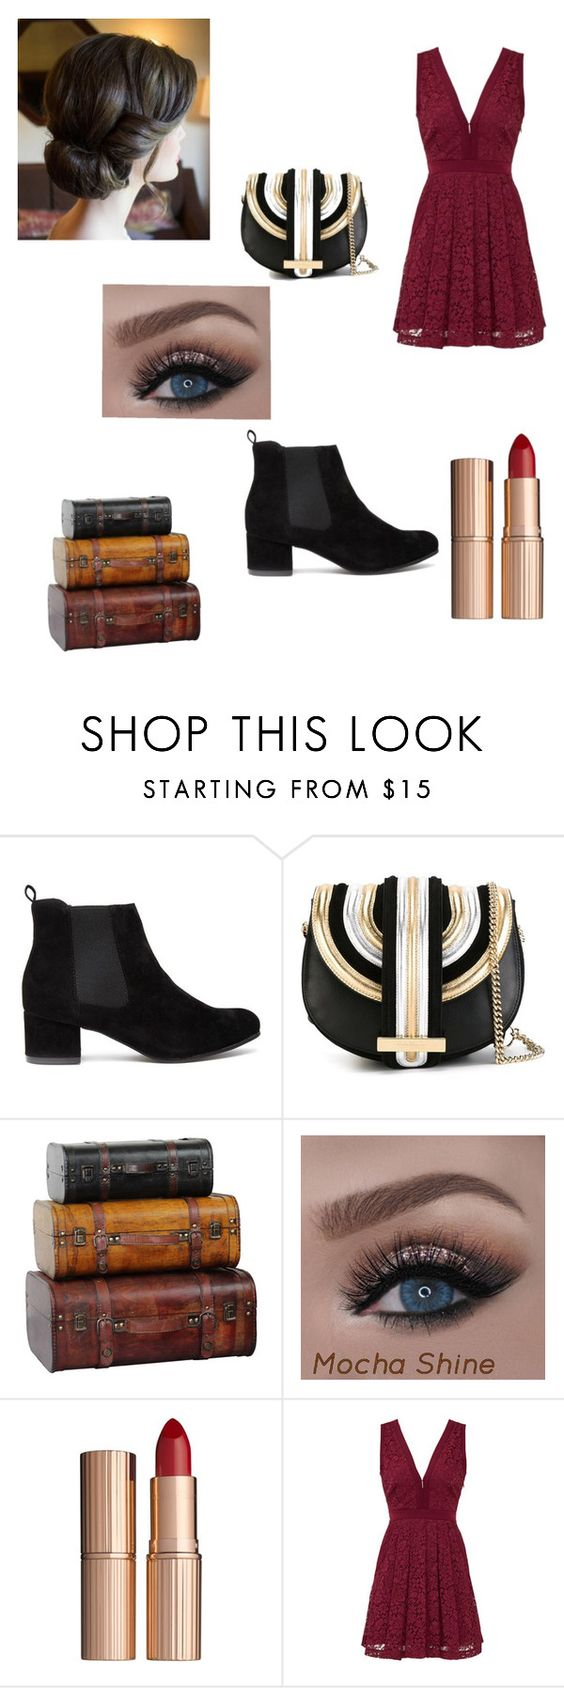 """christmas party with bae"" by madison54665 ❤ liked on Polyvore featuring Salvatore Ferragamo, Charlotte Tilbury and Free People"